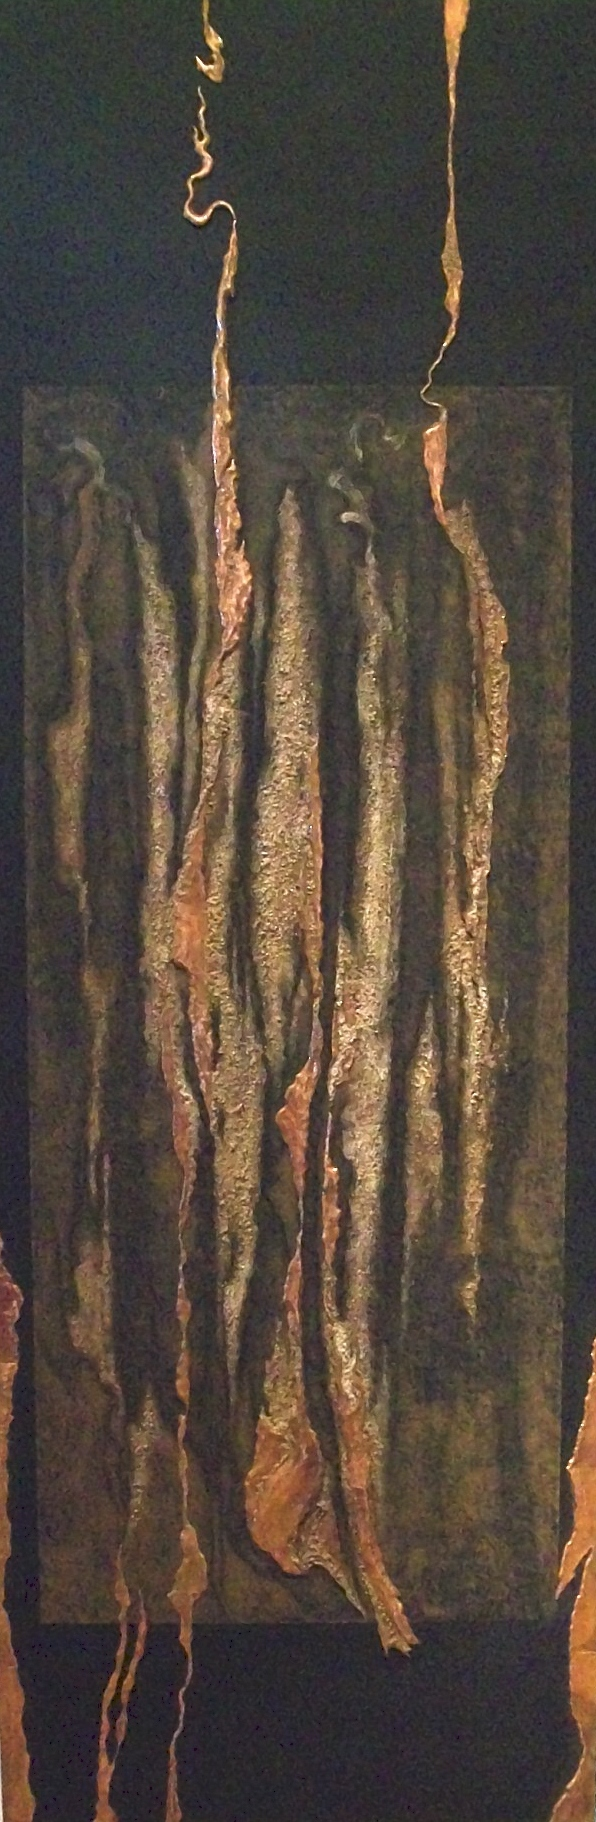 YARA DIPTYCH ,  Yara 1 , 2010, copper repoussé elements, mineral particles and acrylic on archival wood panel, 70H x 23.5W x 2D inches.